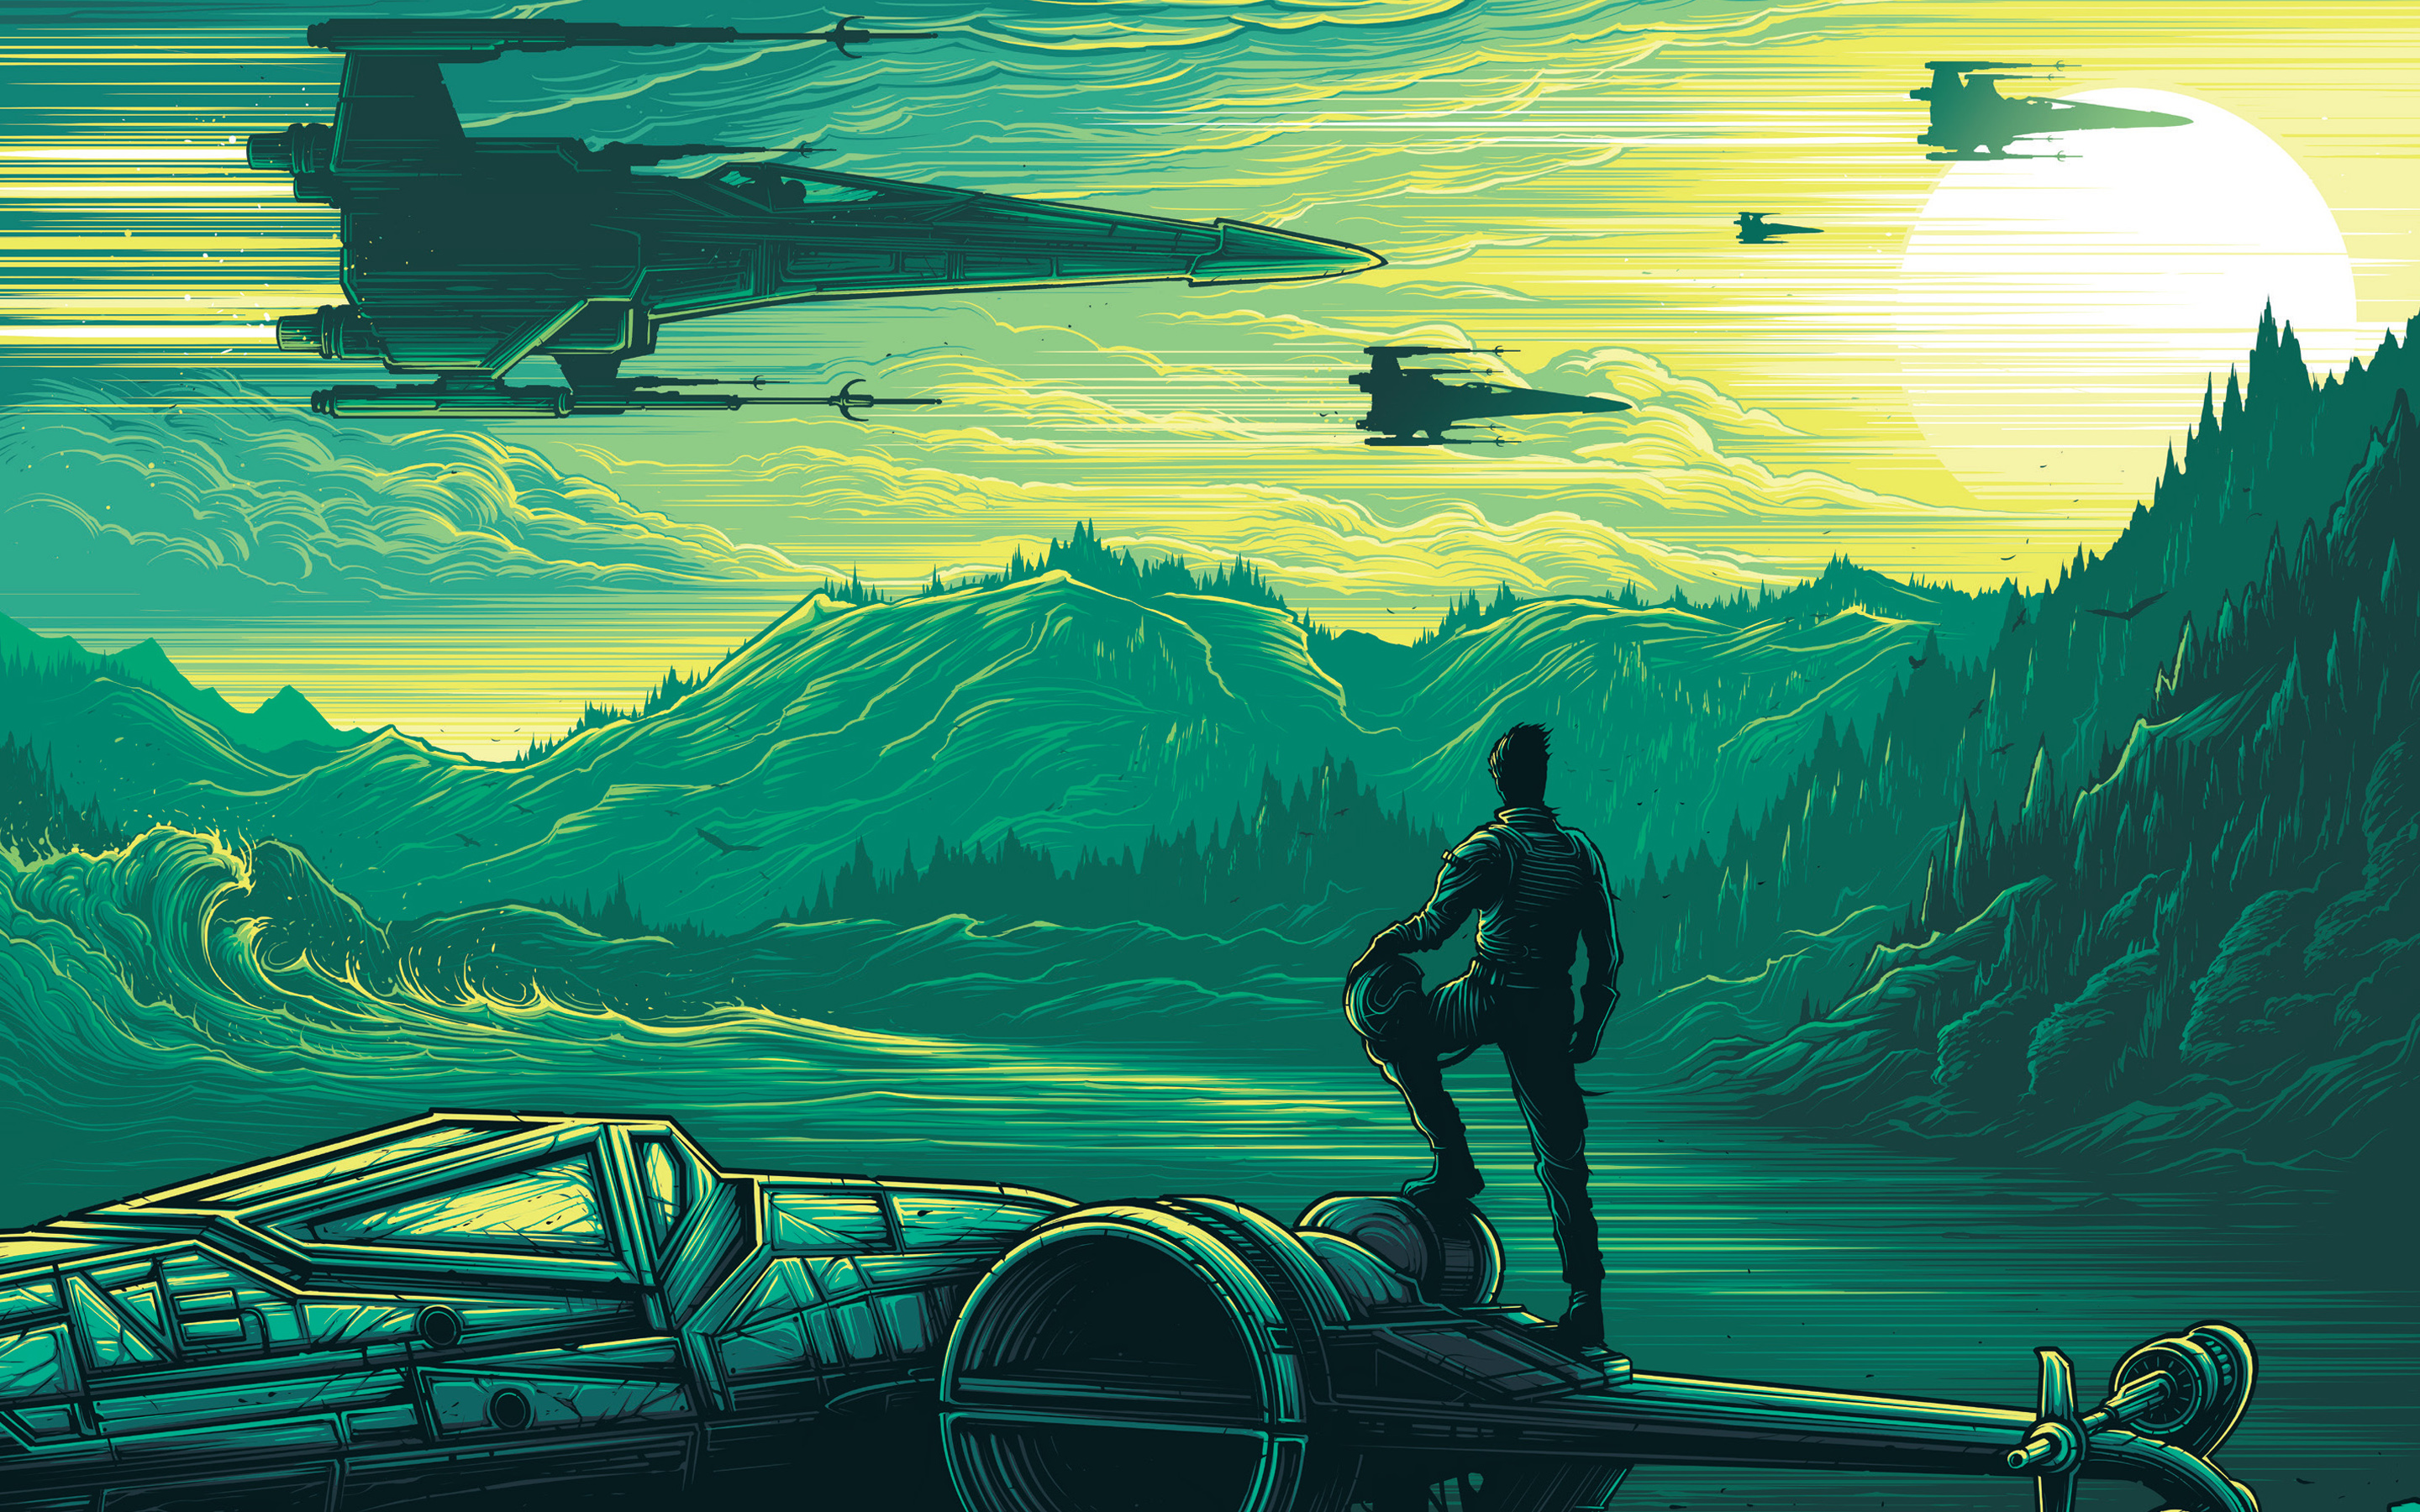 Star Wars The Force Awakens Wallpaper Phone For Free Star Wars Wallpaper Fan Art 2880x1800 Wallpaper Teahub Io